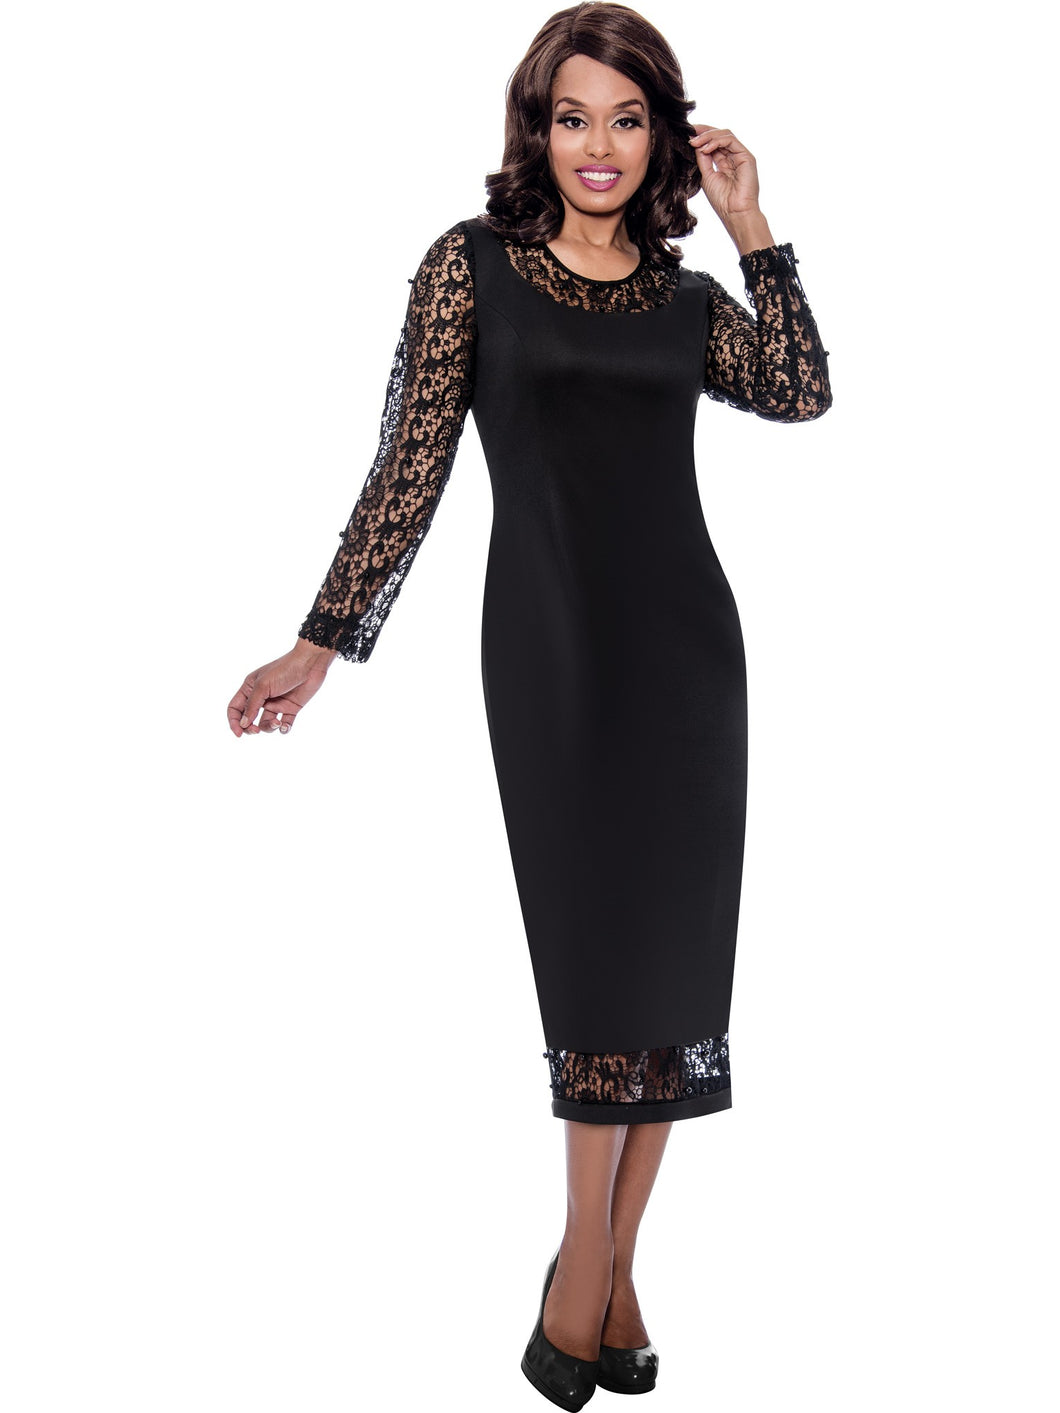 DN2321 Women's (Sizes 16W-26W)